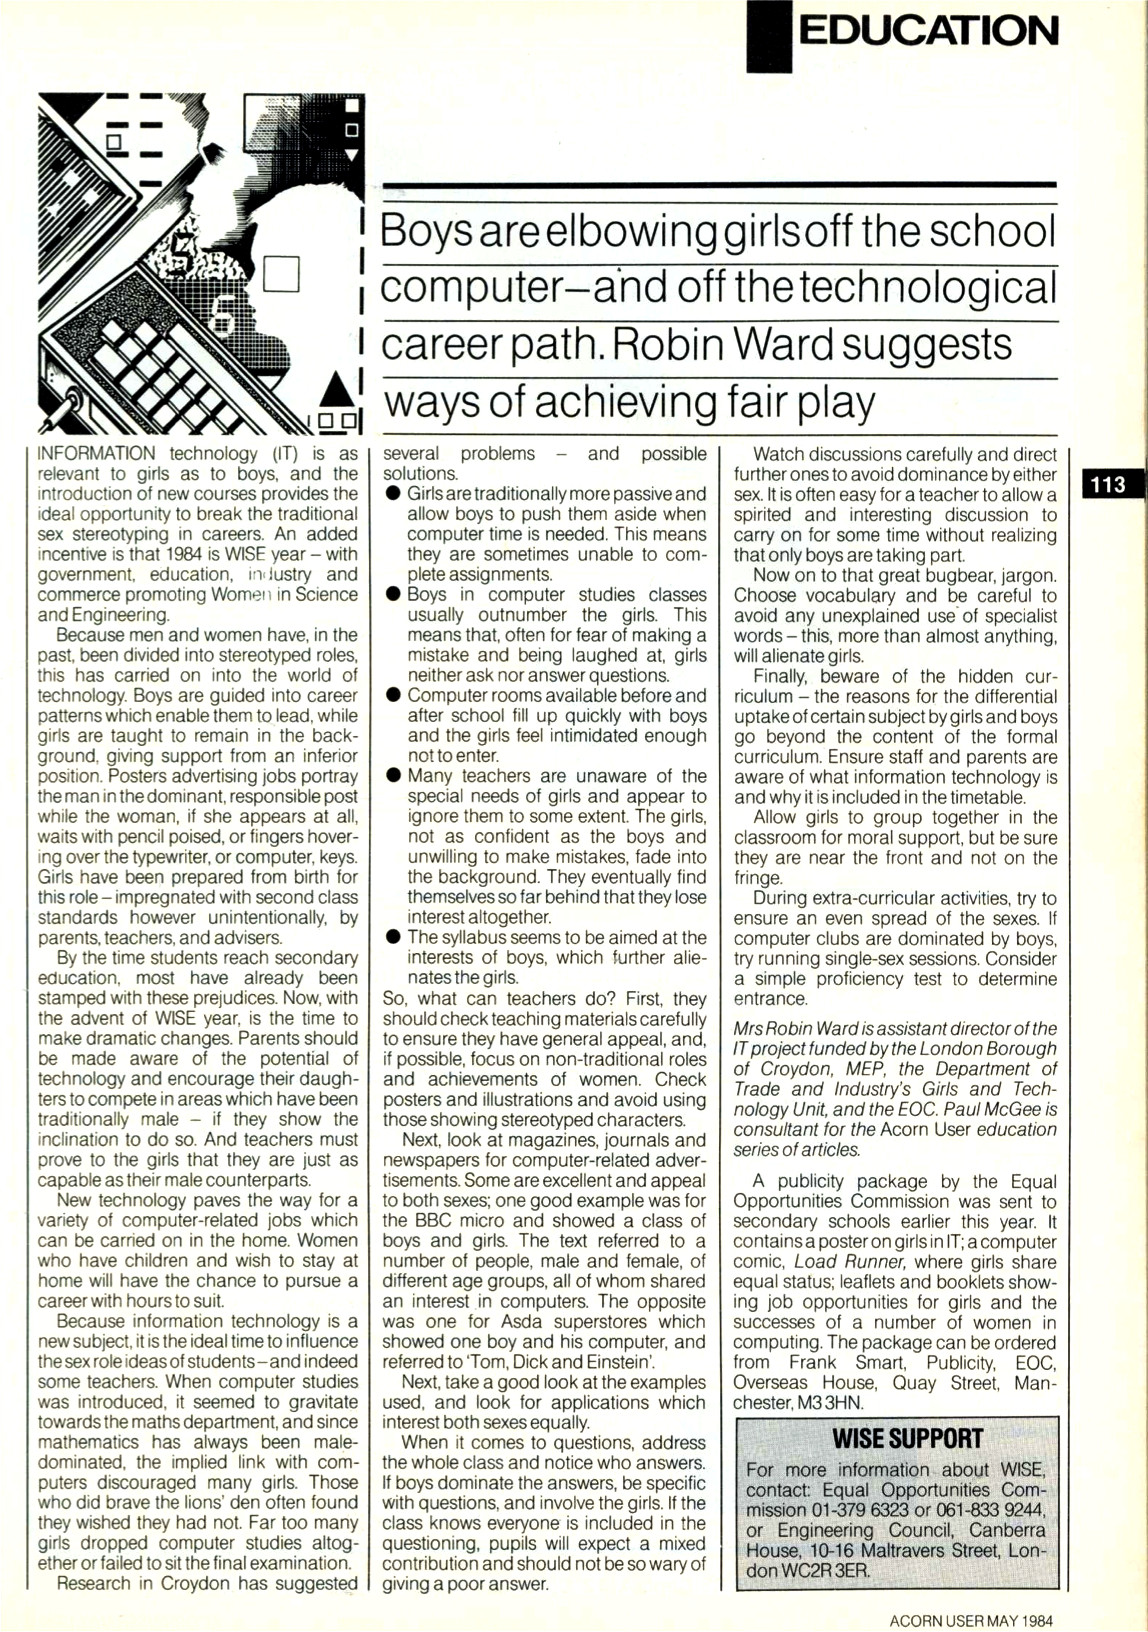 May 1984 Acorn User article